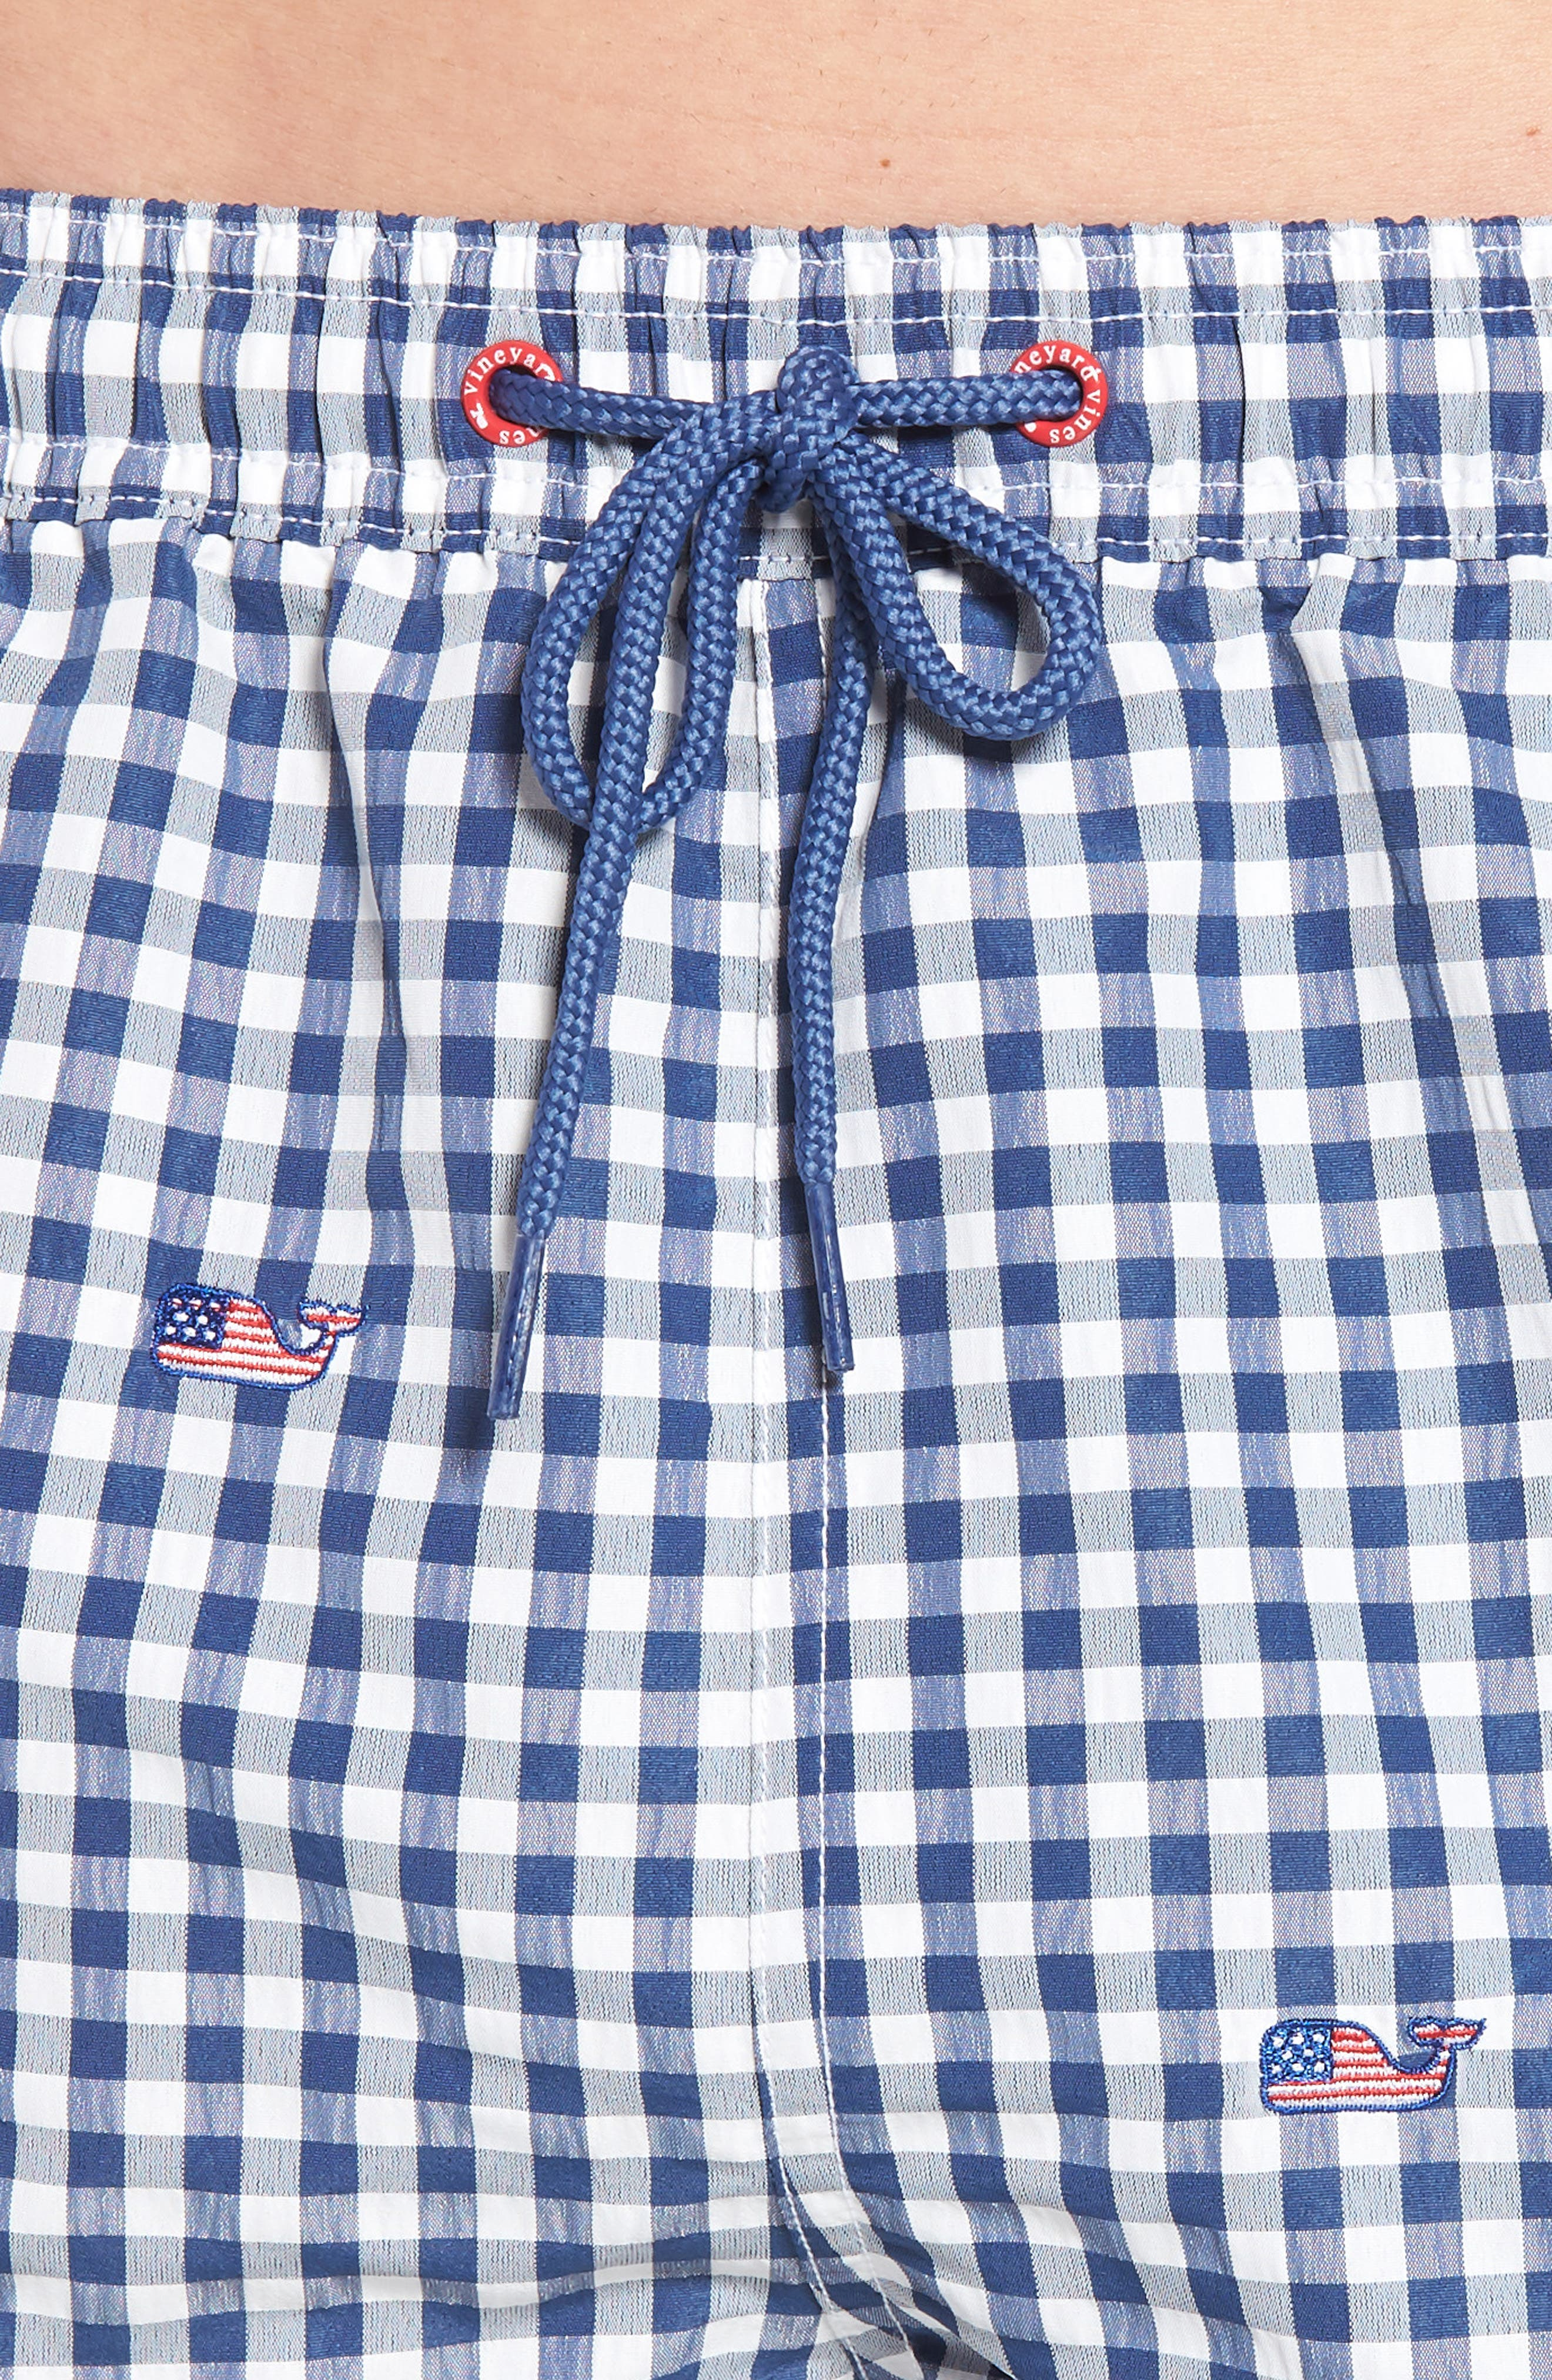 Chappy Flag Whale Embroidered Gingham Swim Trunks,                             Alternate thumbnail 4, color,                             461